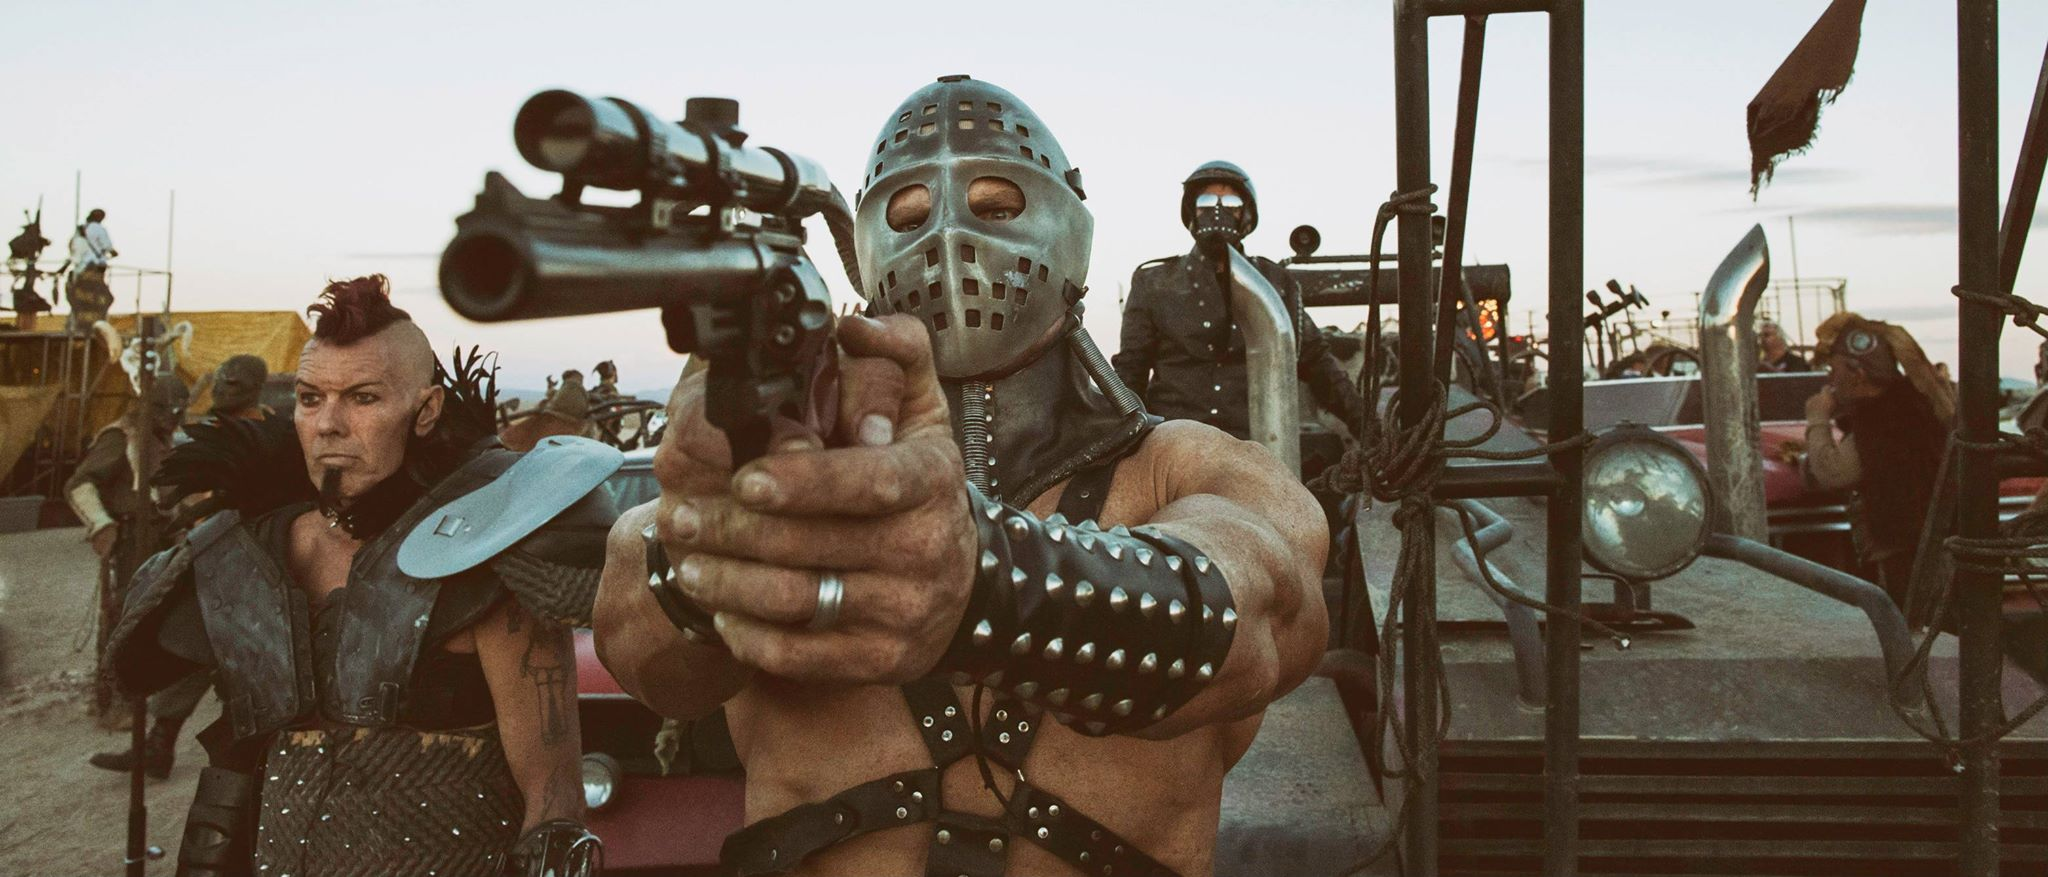 Cars 2 Live Wallpaper Mad Max Fans Prepare To Live The World Of Fury Road